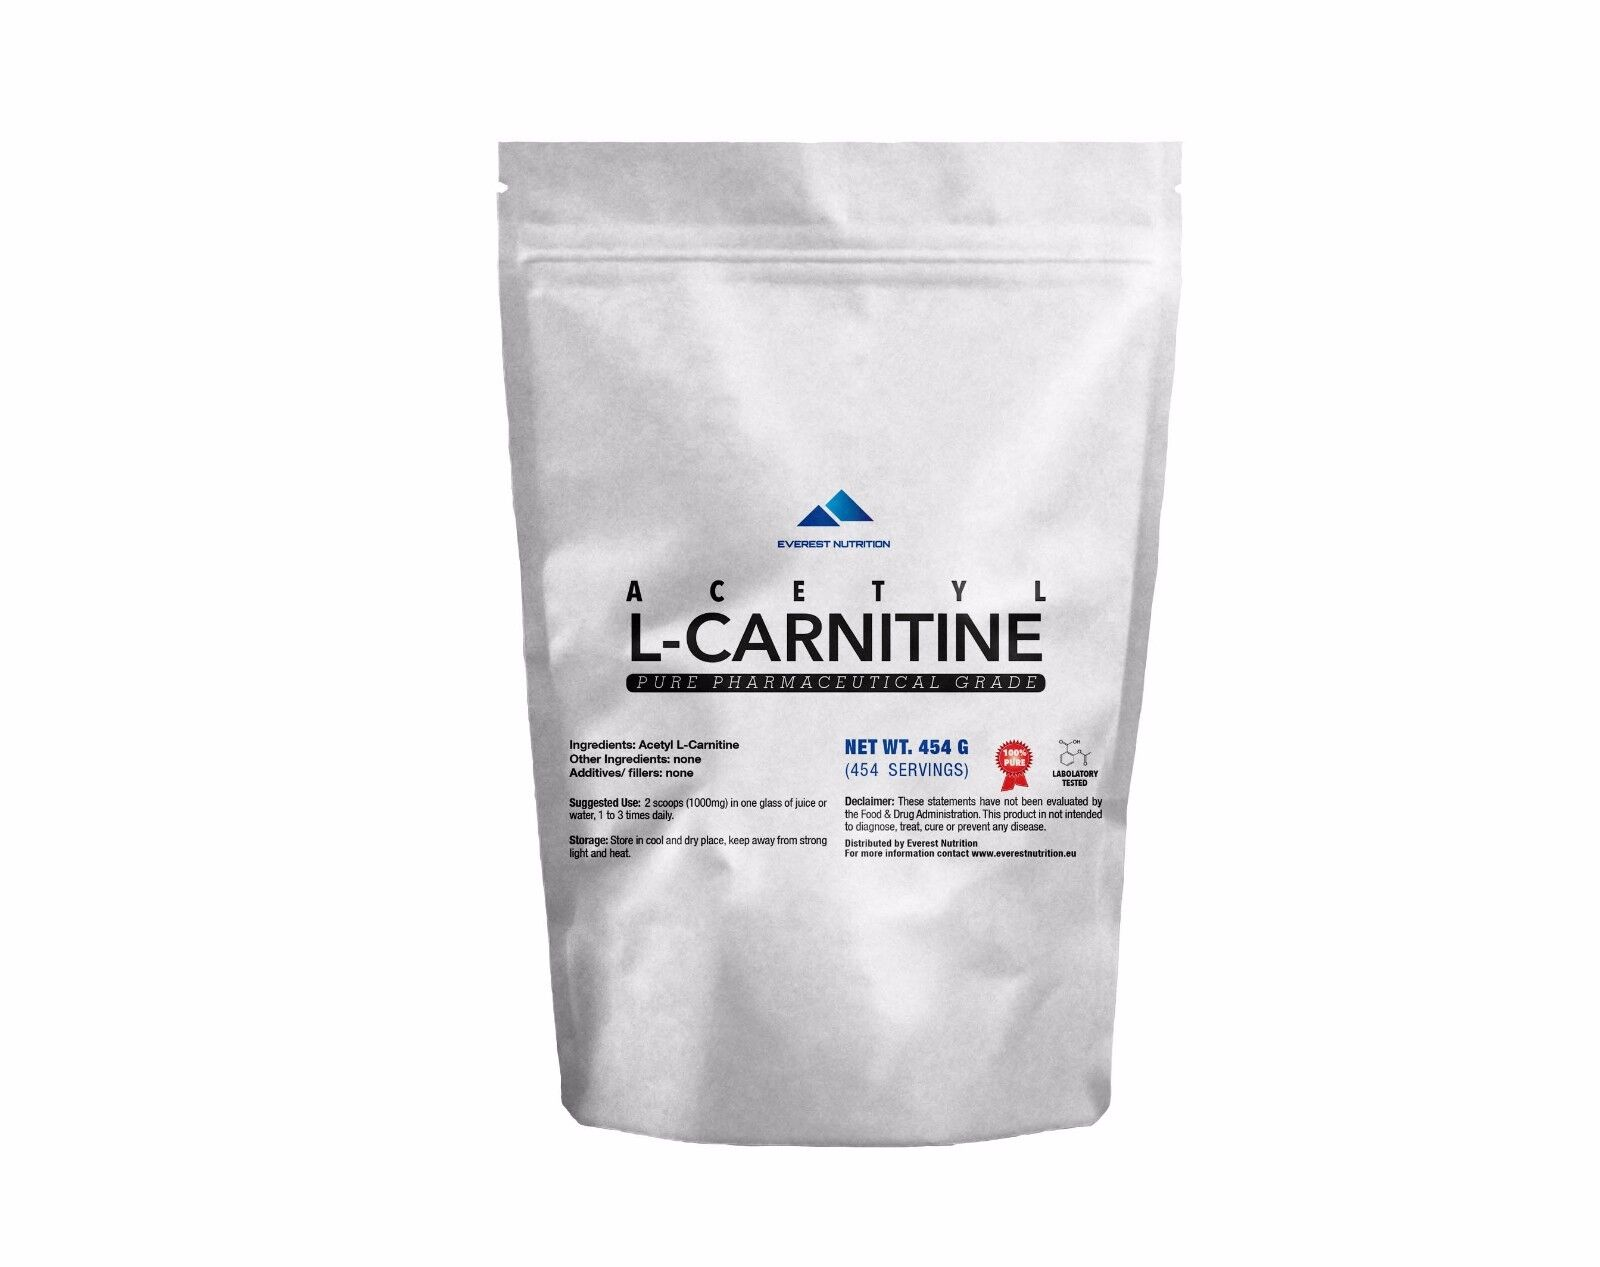 ACETYL L-CARNITINE ALCAR 100% PURE POWDER PREVENT STRESS AND DEPRESSION FAT LOSS